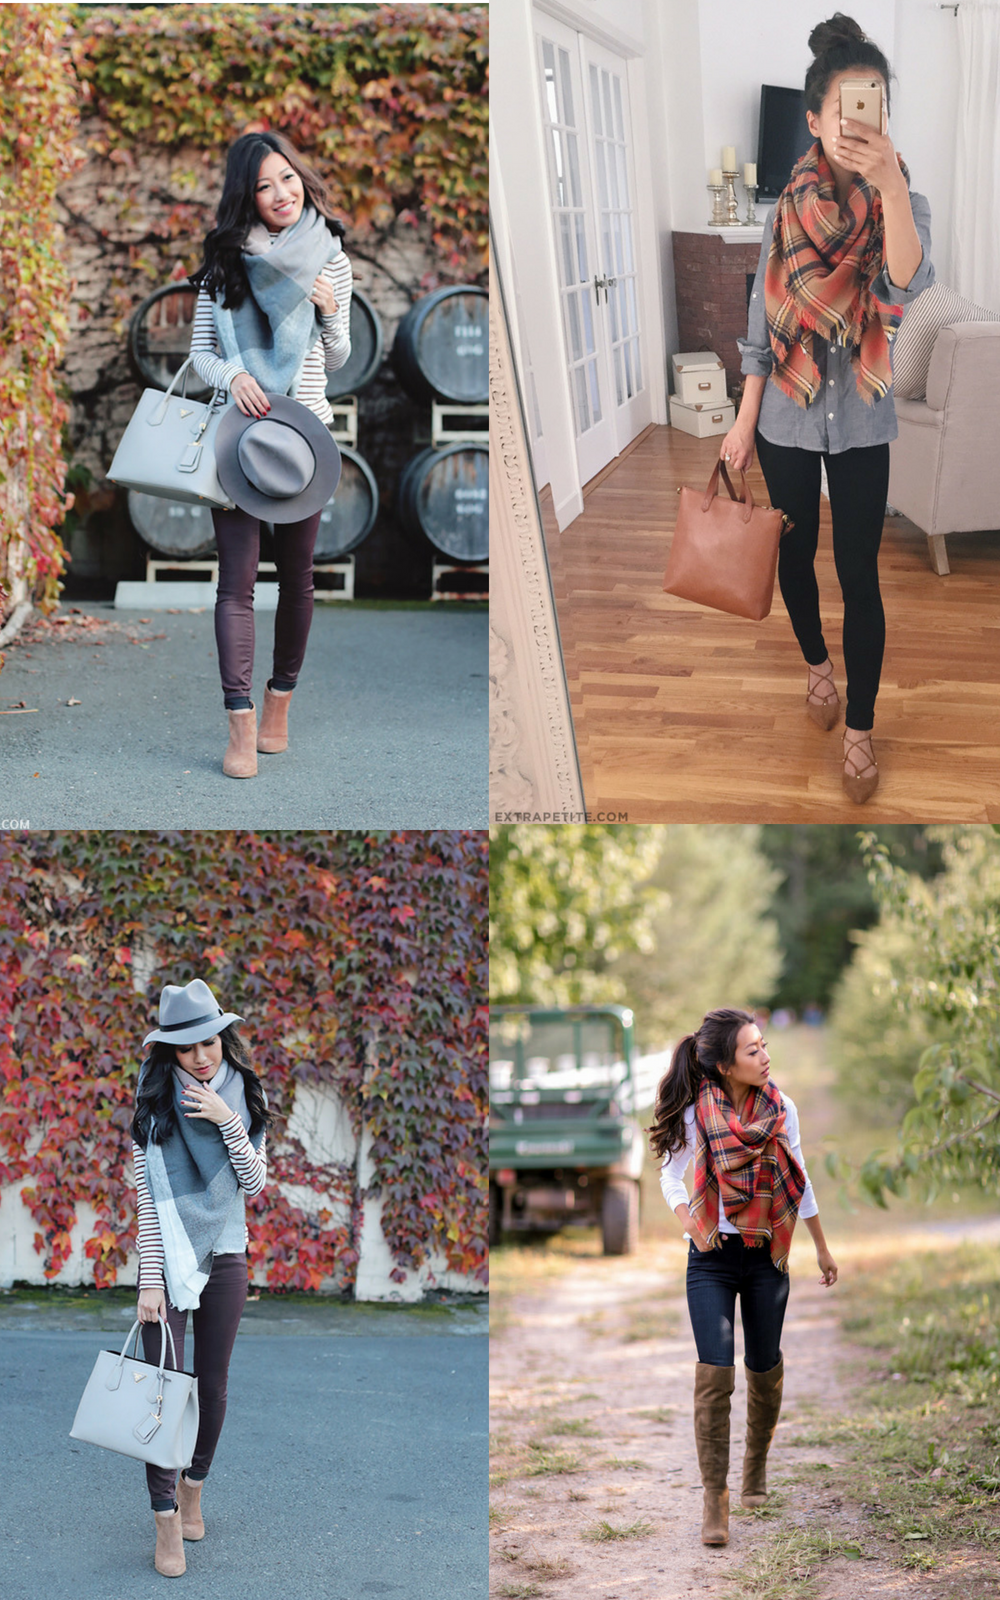 36 Trendy Outfit Ideas for Fall – Fall Outfit Inspiration forecast